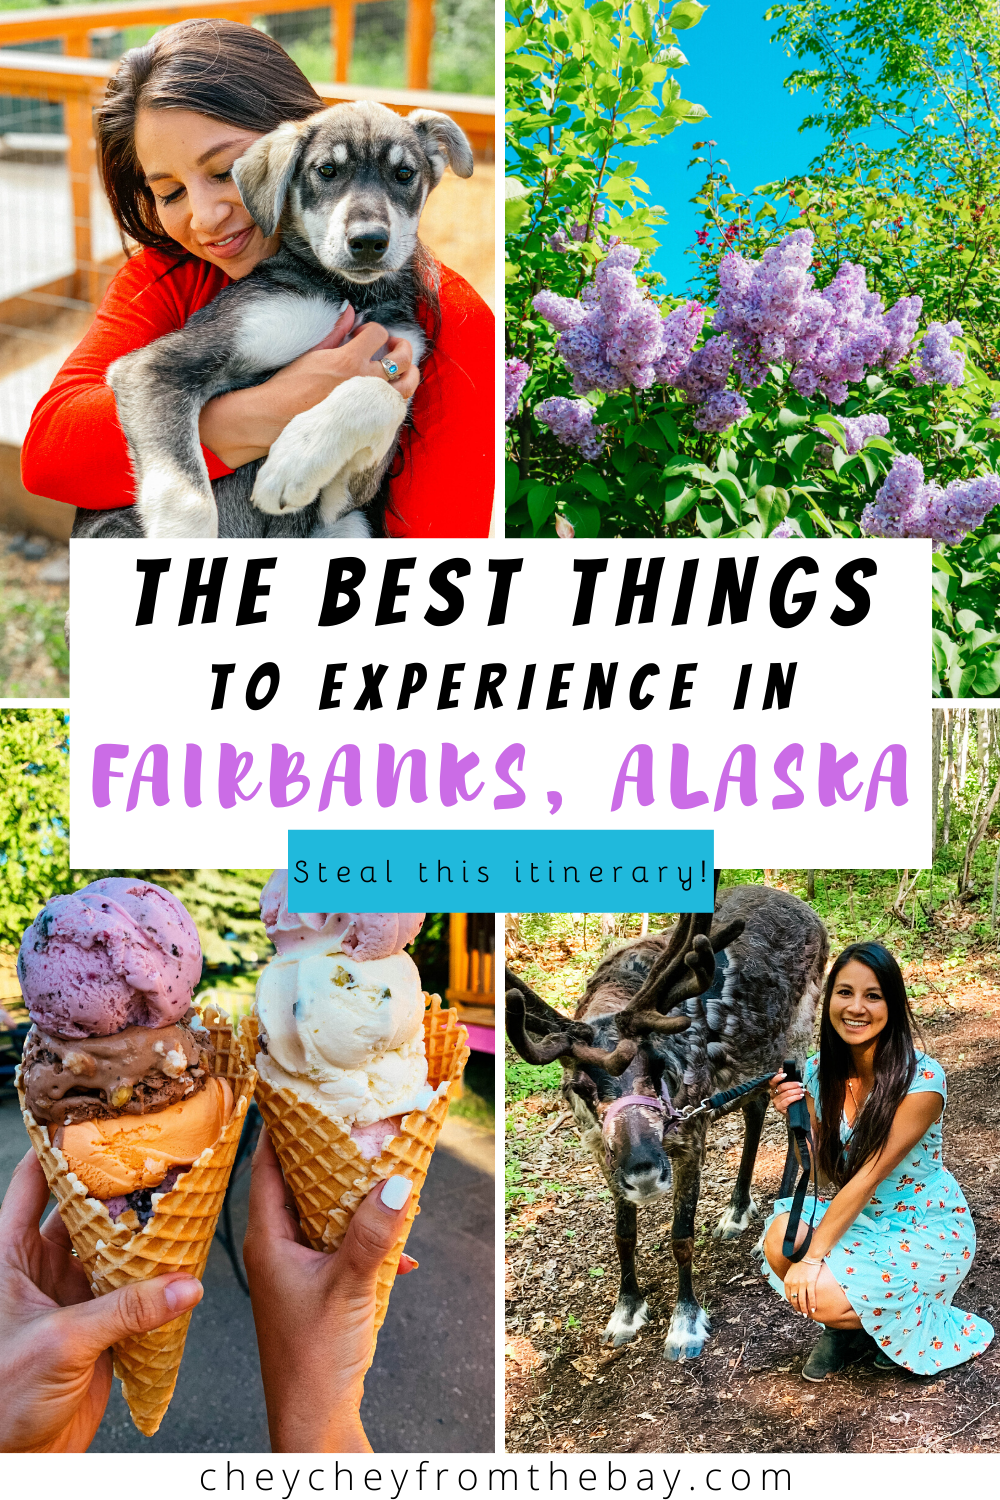 Check out this six-day itinerary of the best things to do in Fairbanks, Alaska during Midnight Sun Season including where to eat and drink; top places to pet reindeer and kennel dogs; how to visit the Arctic Circle; which hot springs are worth going to; and so much more!